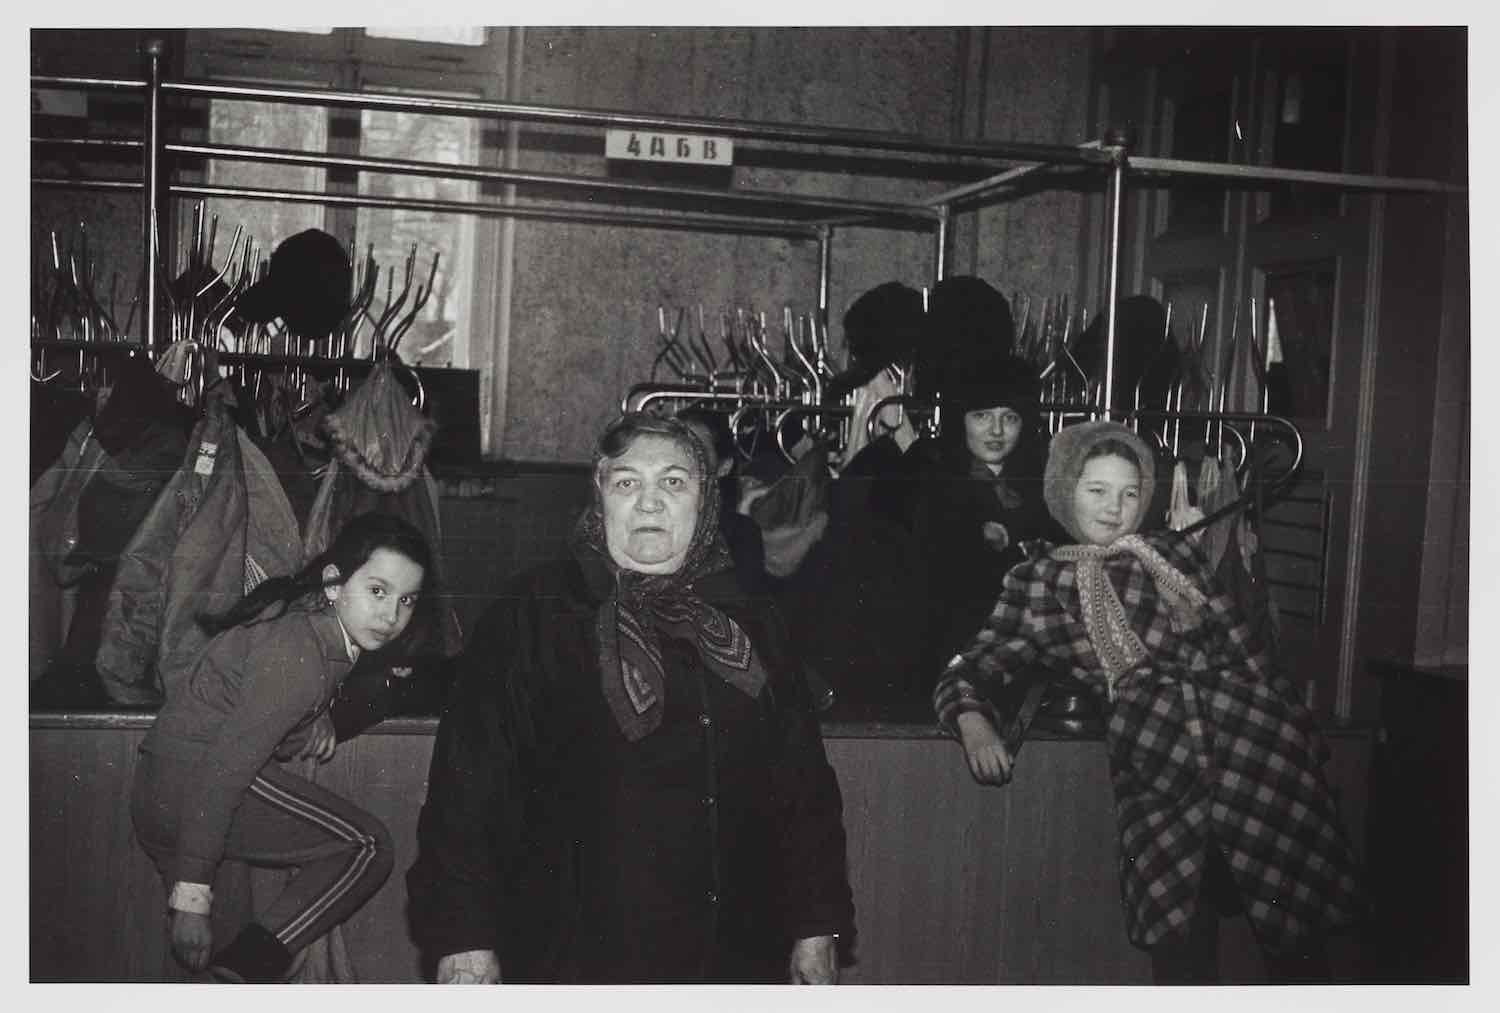 Coat Check, a photograph made by the artist's grandmother, Olga Zinovievna Kantarovskaya, from 1957 to 1991. Courtesy of the artist and Luhring Augustine, New York.